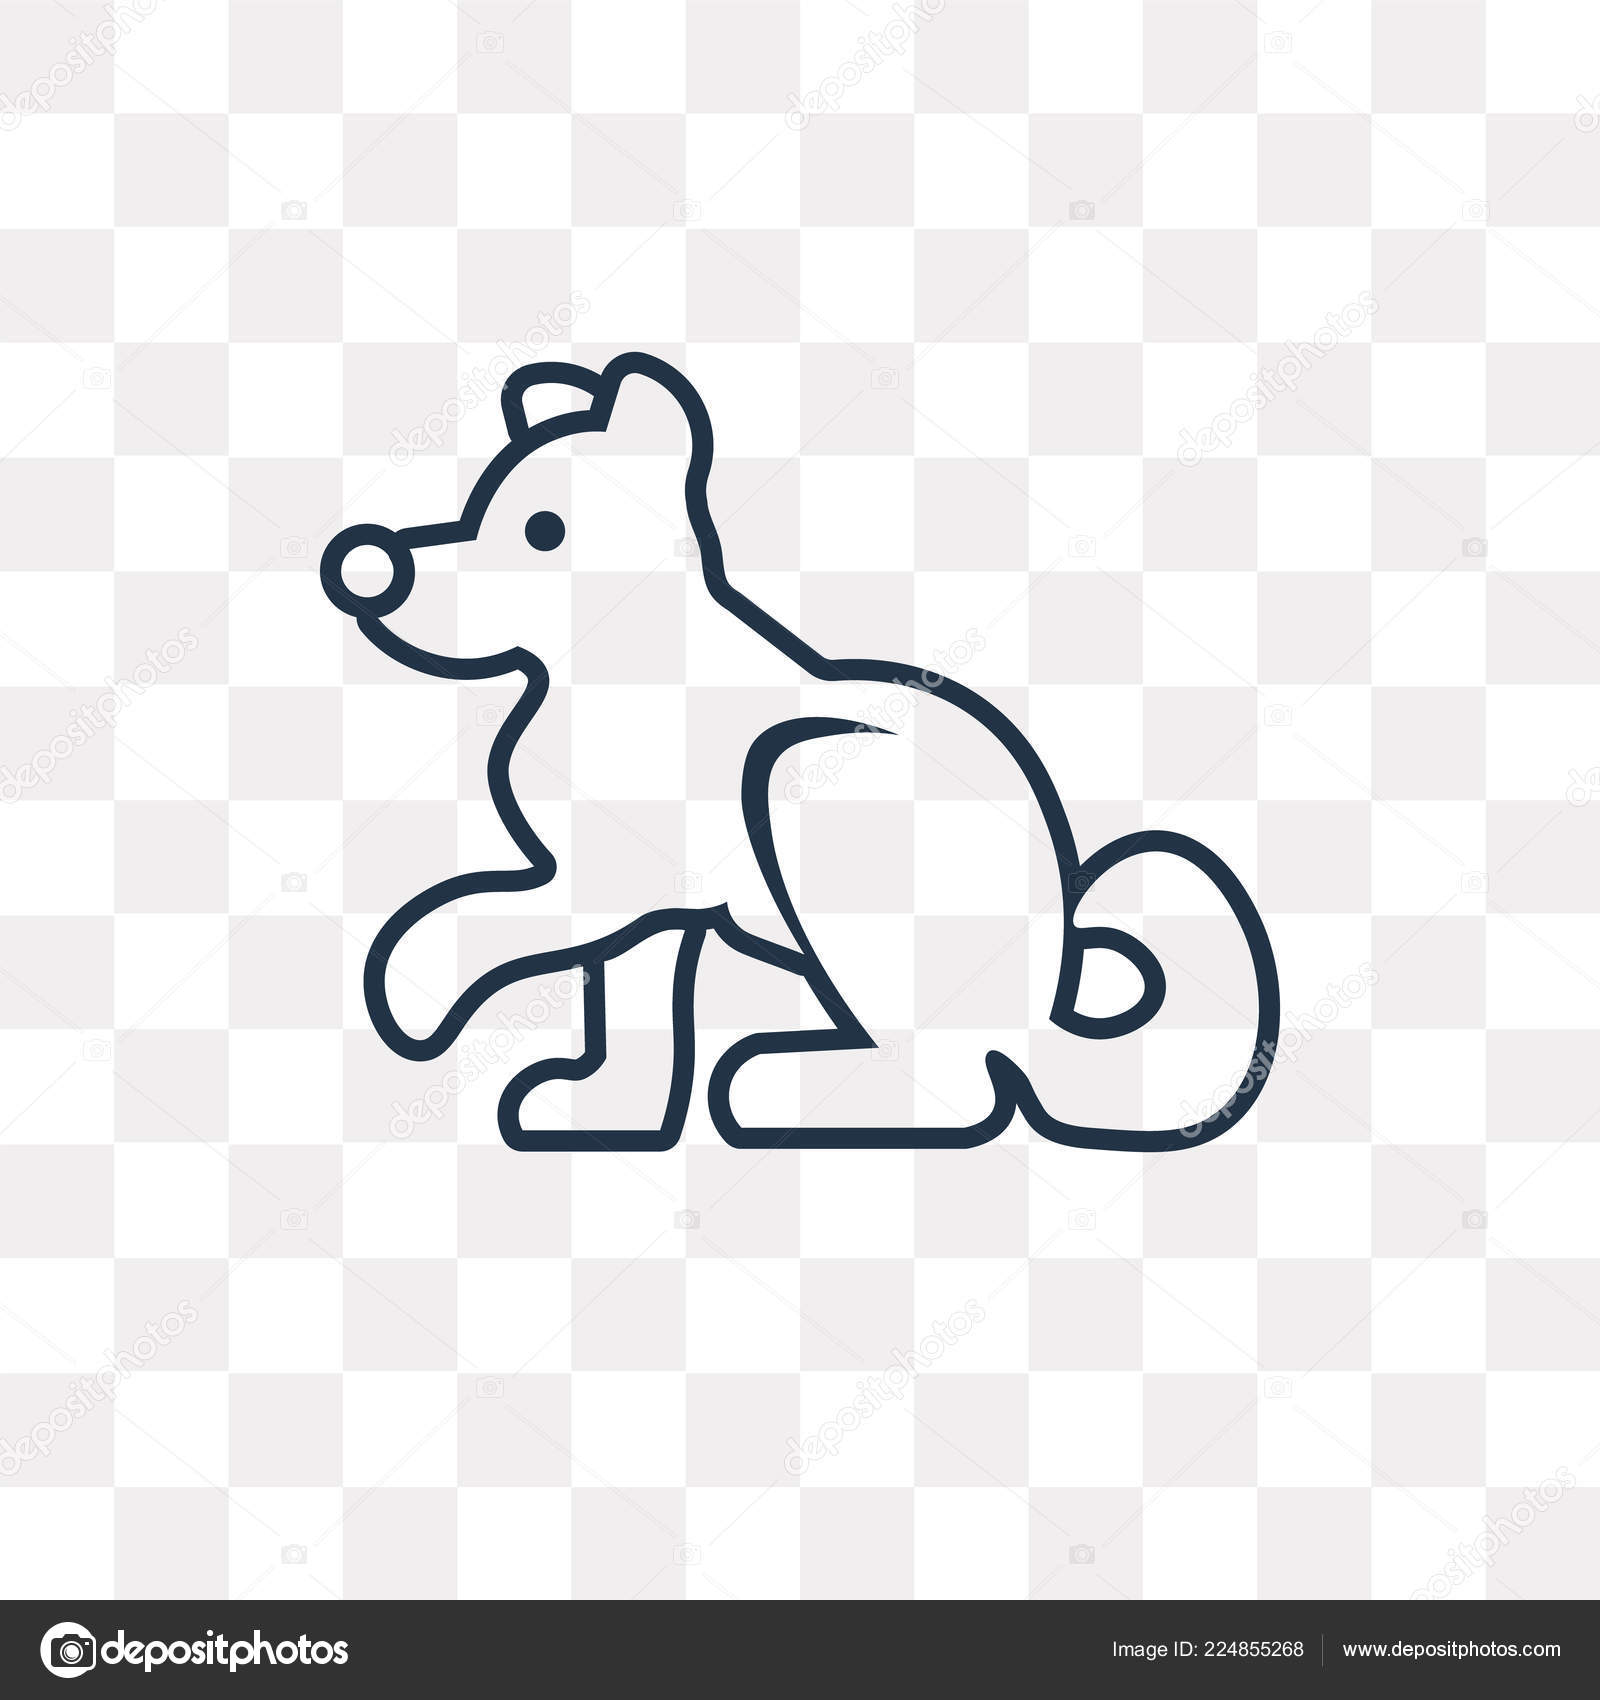 Siberian Husky Vector Outline Icon Isolated Transparent Background